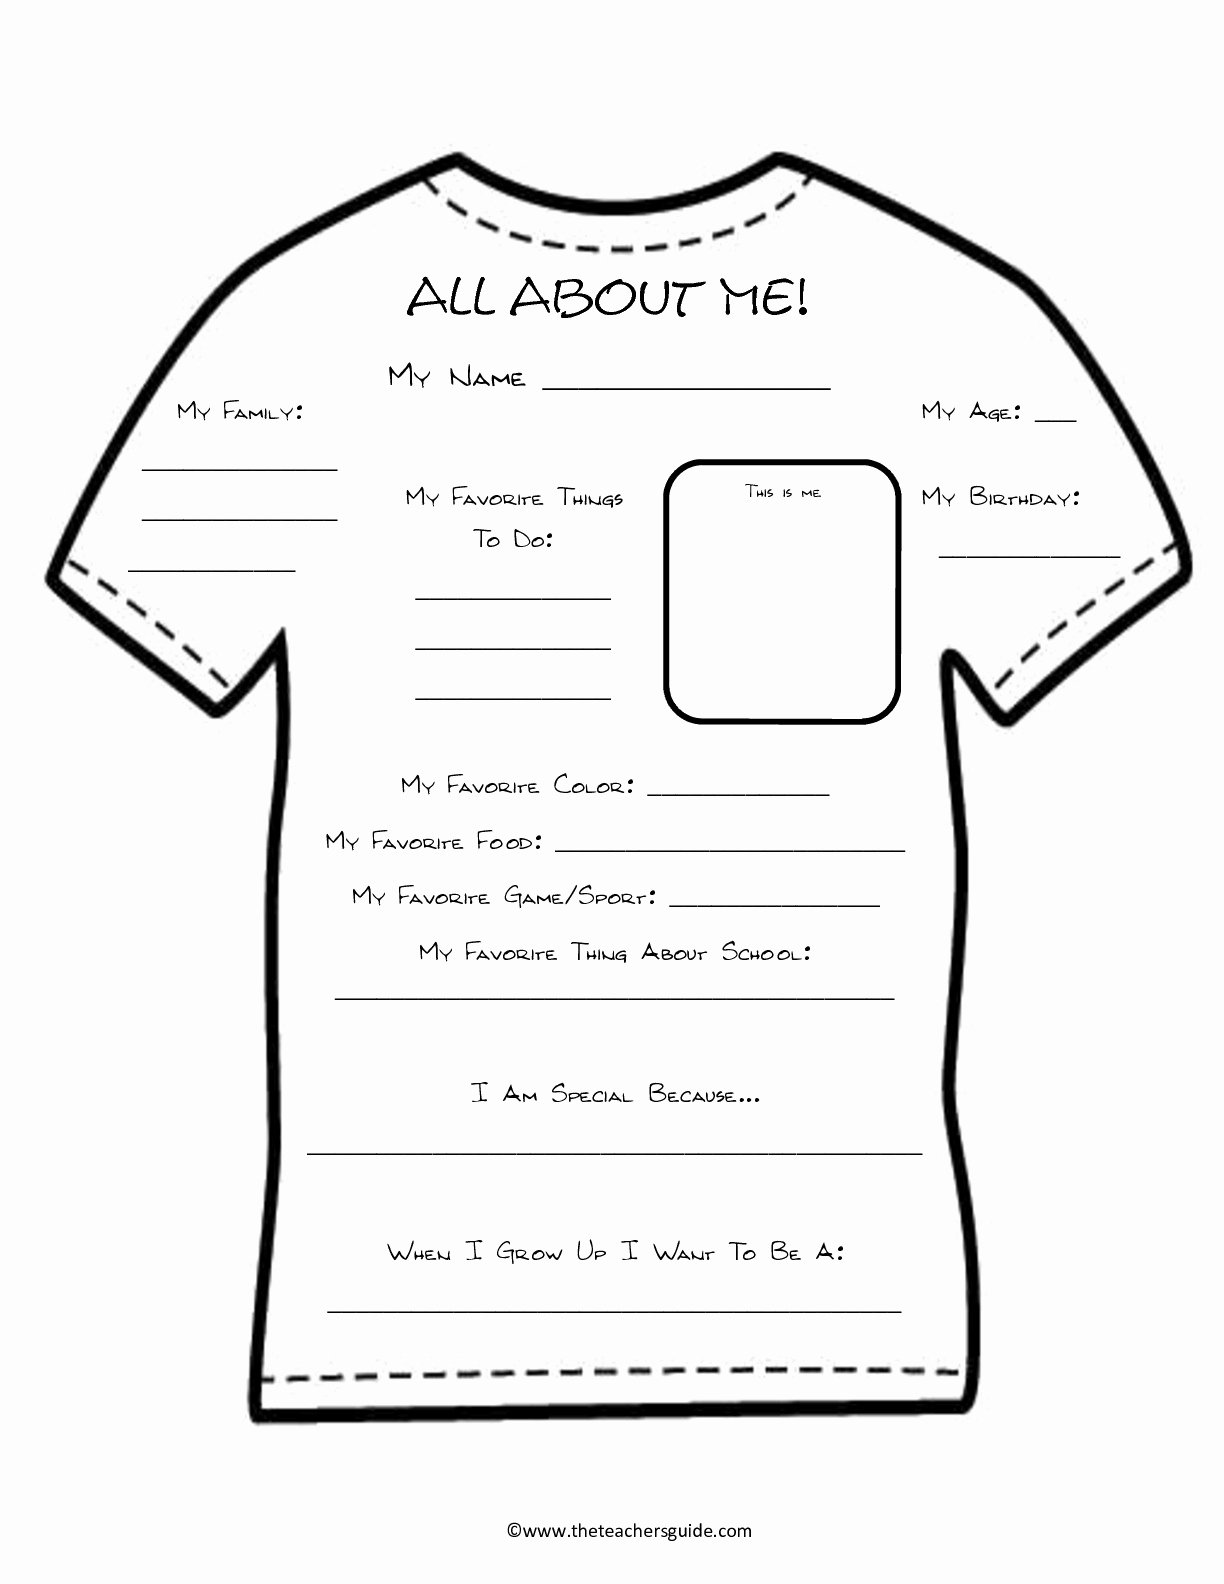 All About Me Printable Worksheet Lovely All About Me Worksheetstake the Pen